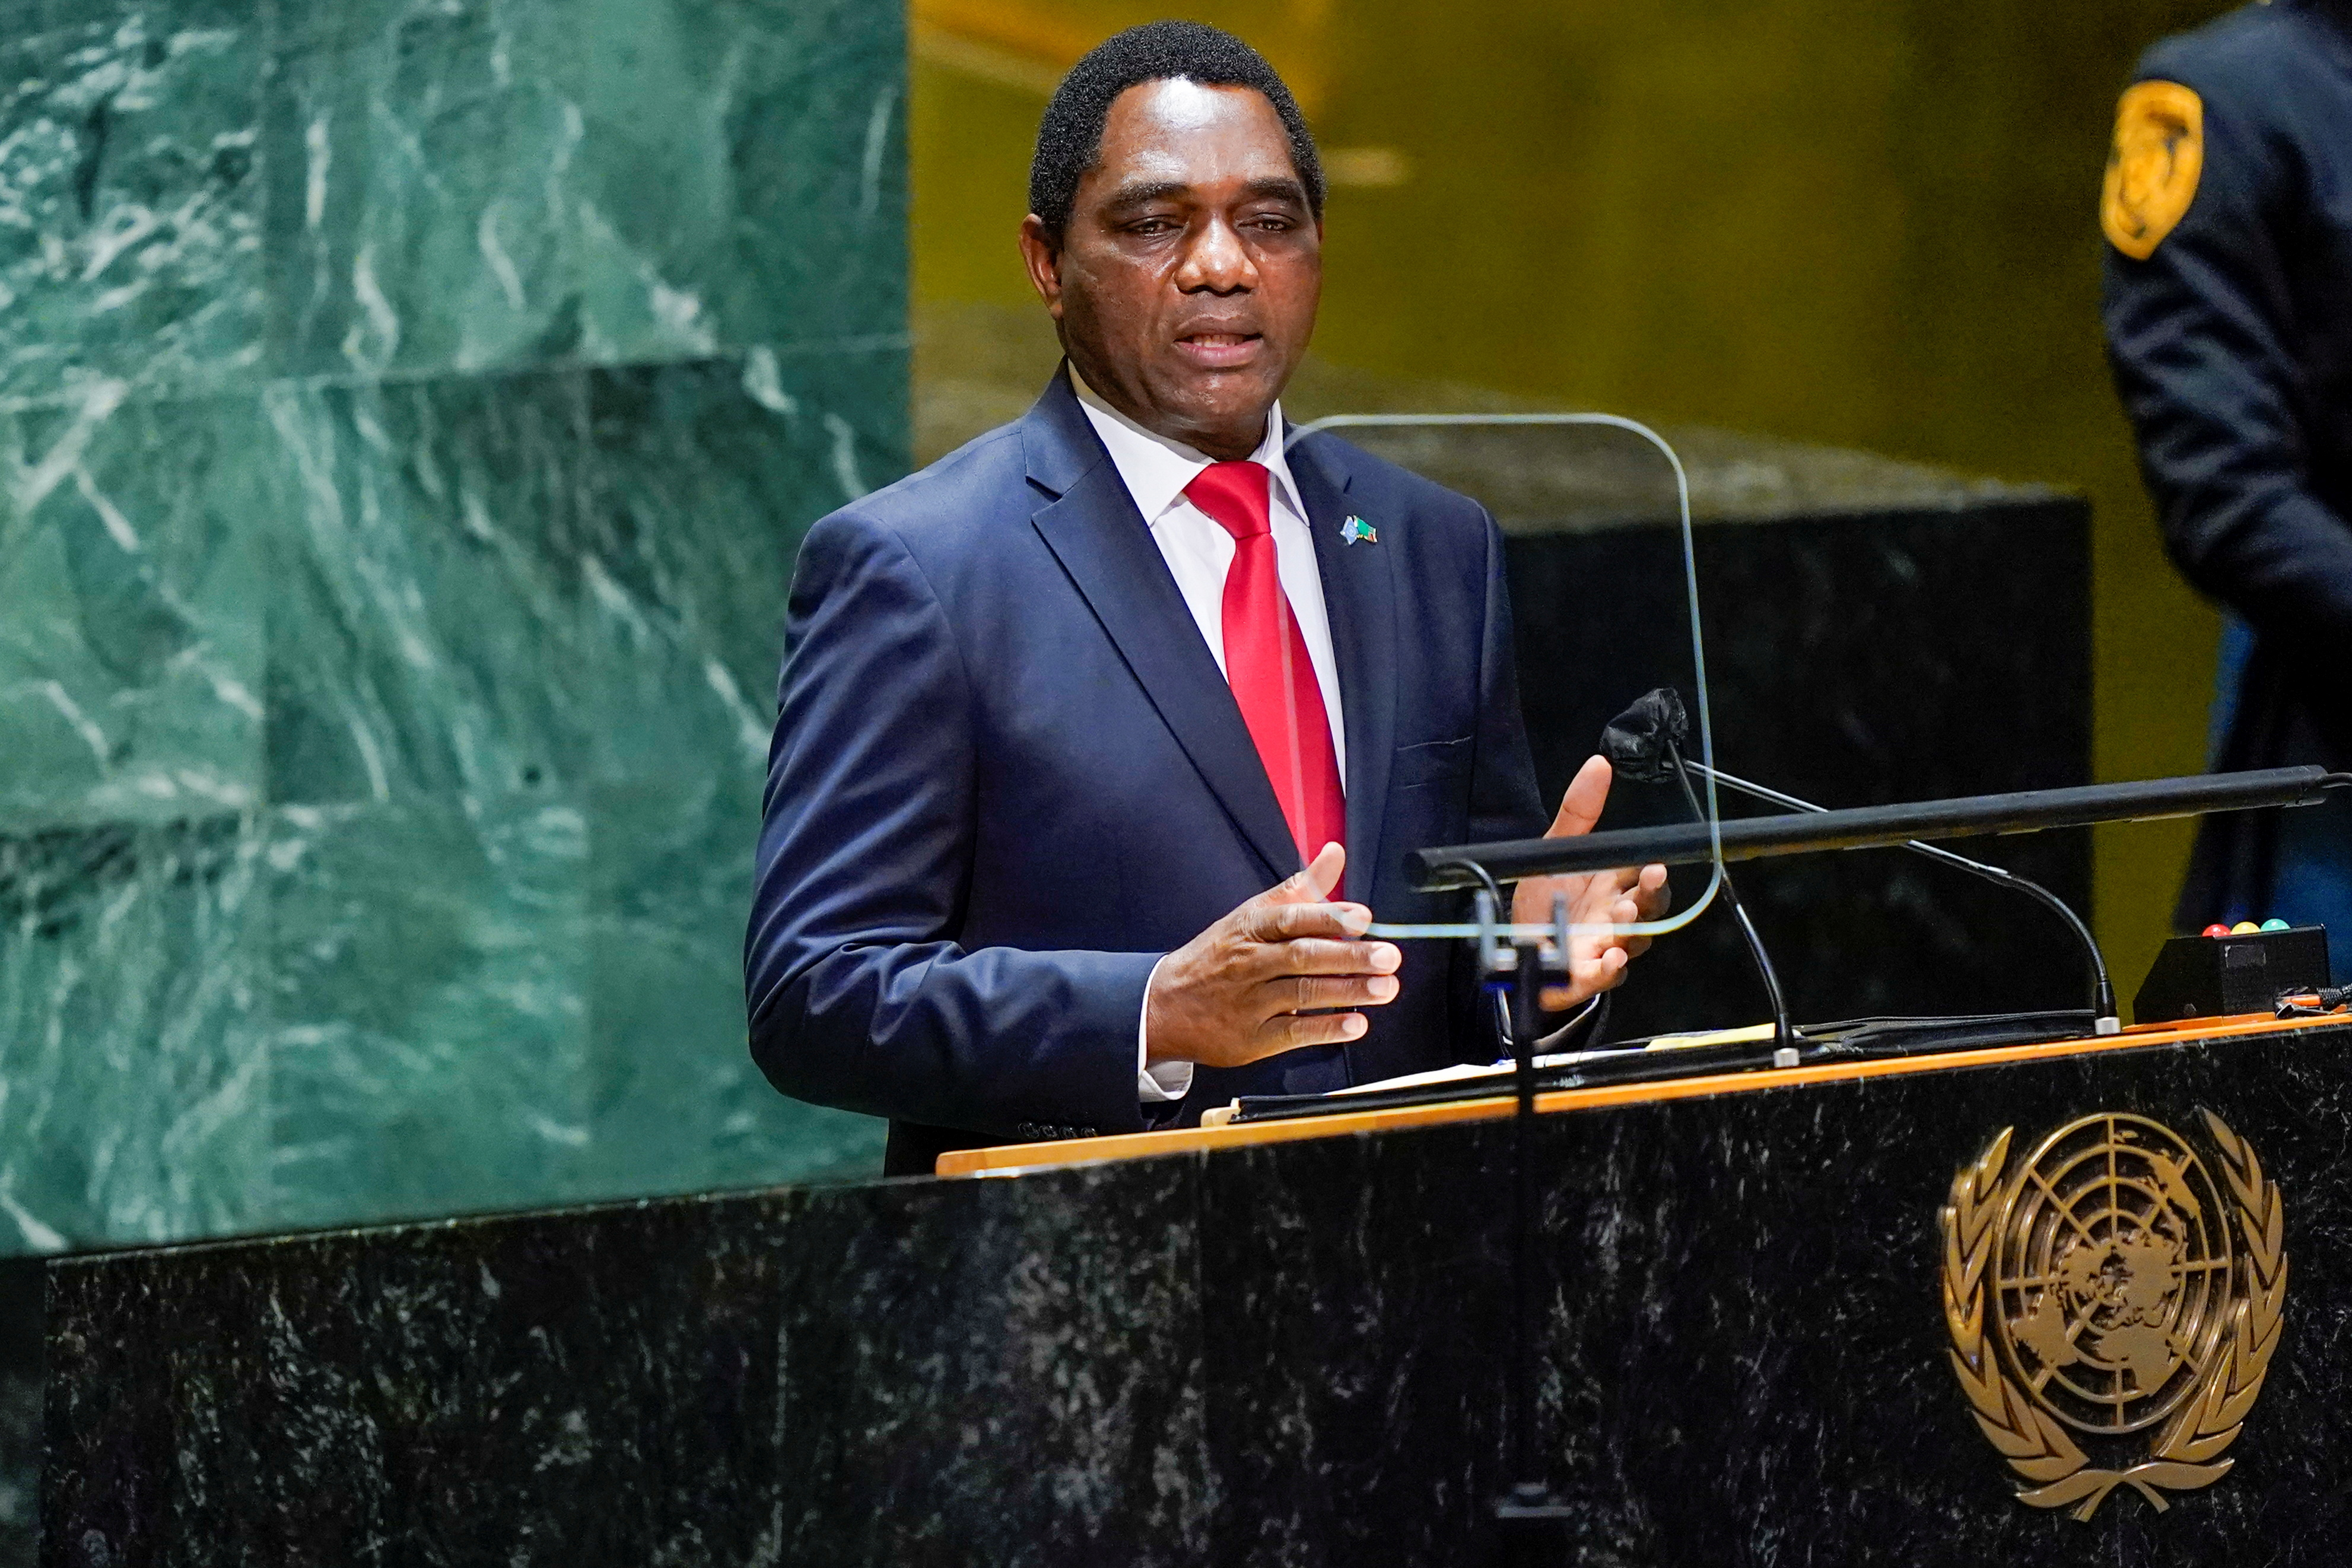 Zambia's President Hakainde Hichilema addresses the 76th Session of the United Nations General Assembly at U.N. headquarters in New York, U.S. on September 21, 2021.  Mary Altaffer/Pool via REUTERS/File Photo